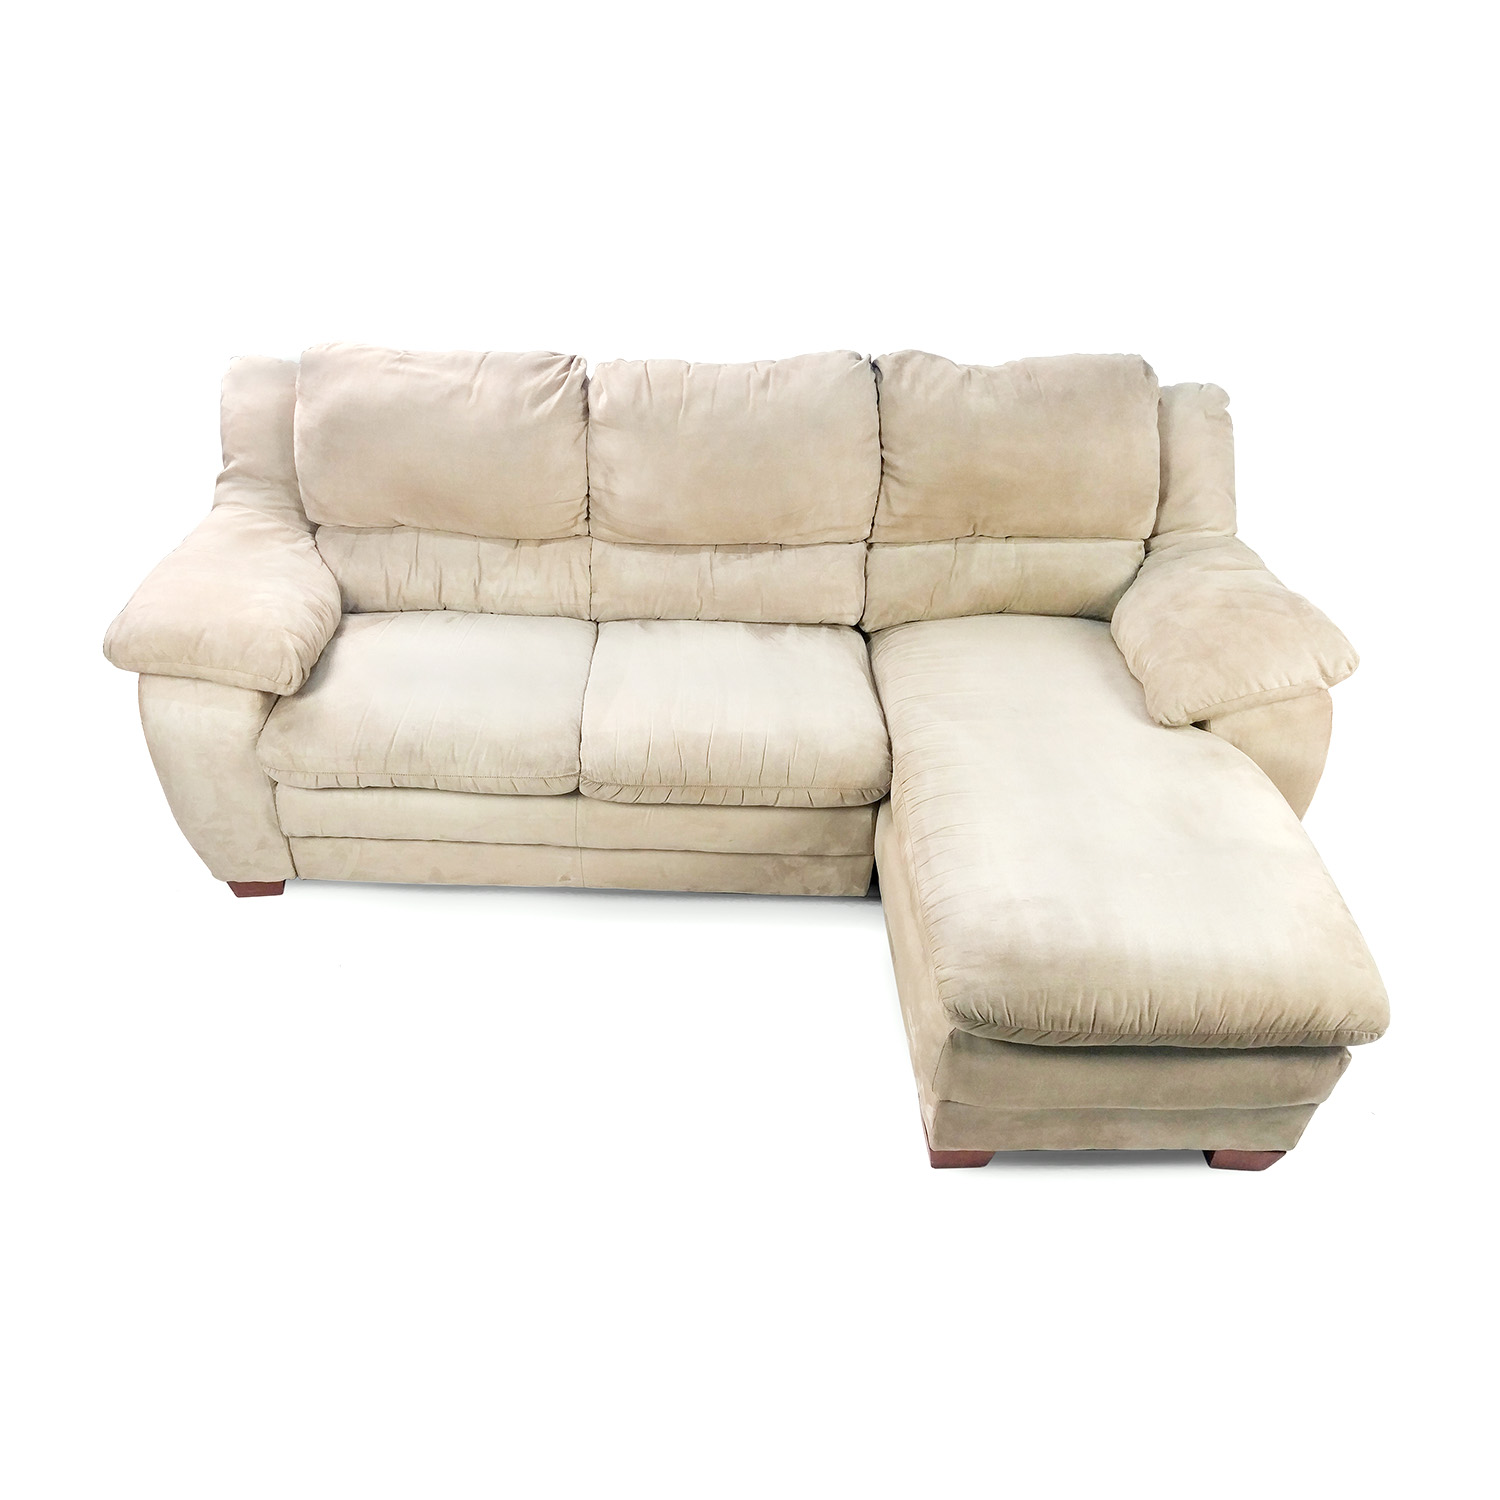 buy Jennifer Convertibles Jennifer Microfiber Sectional online